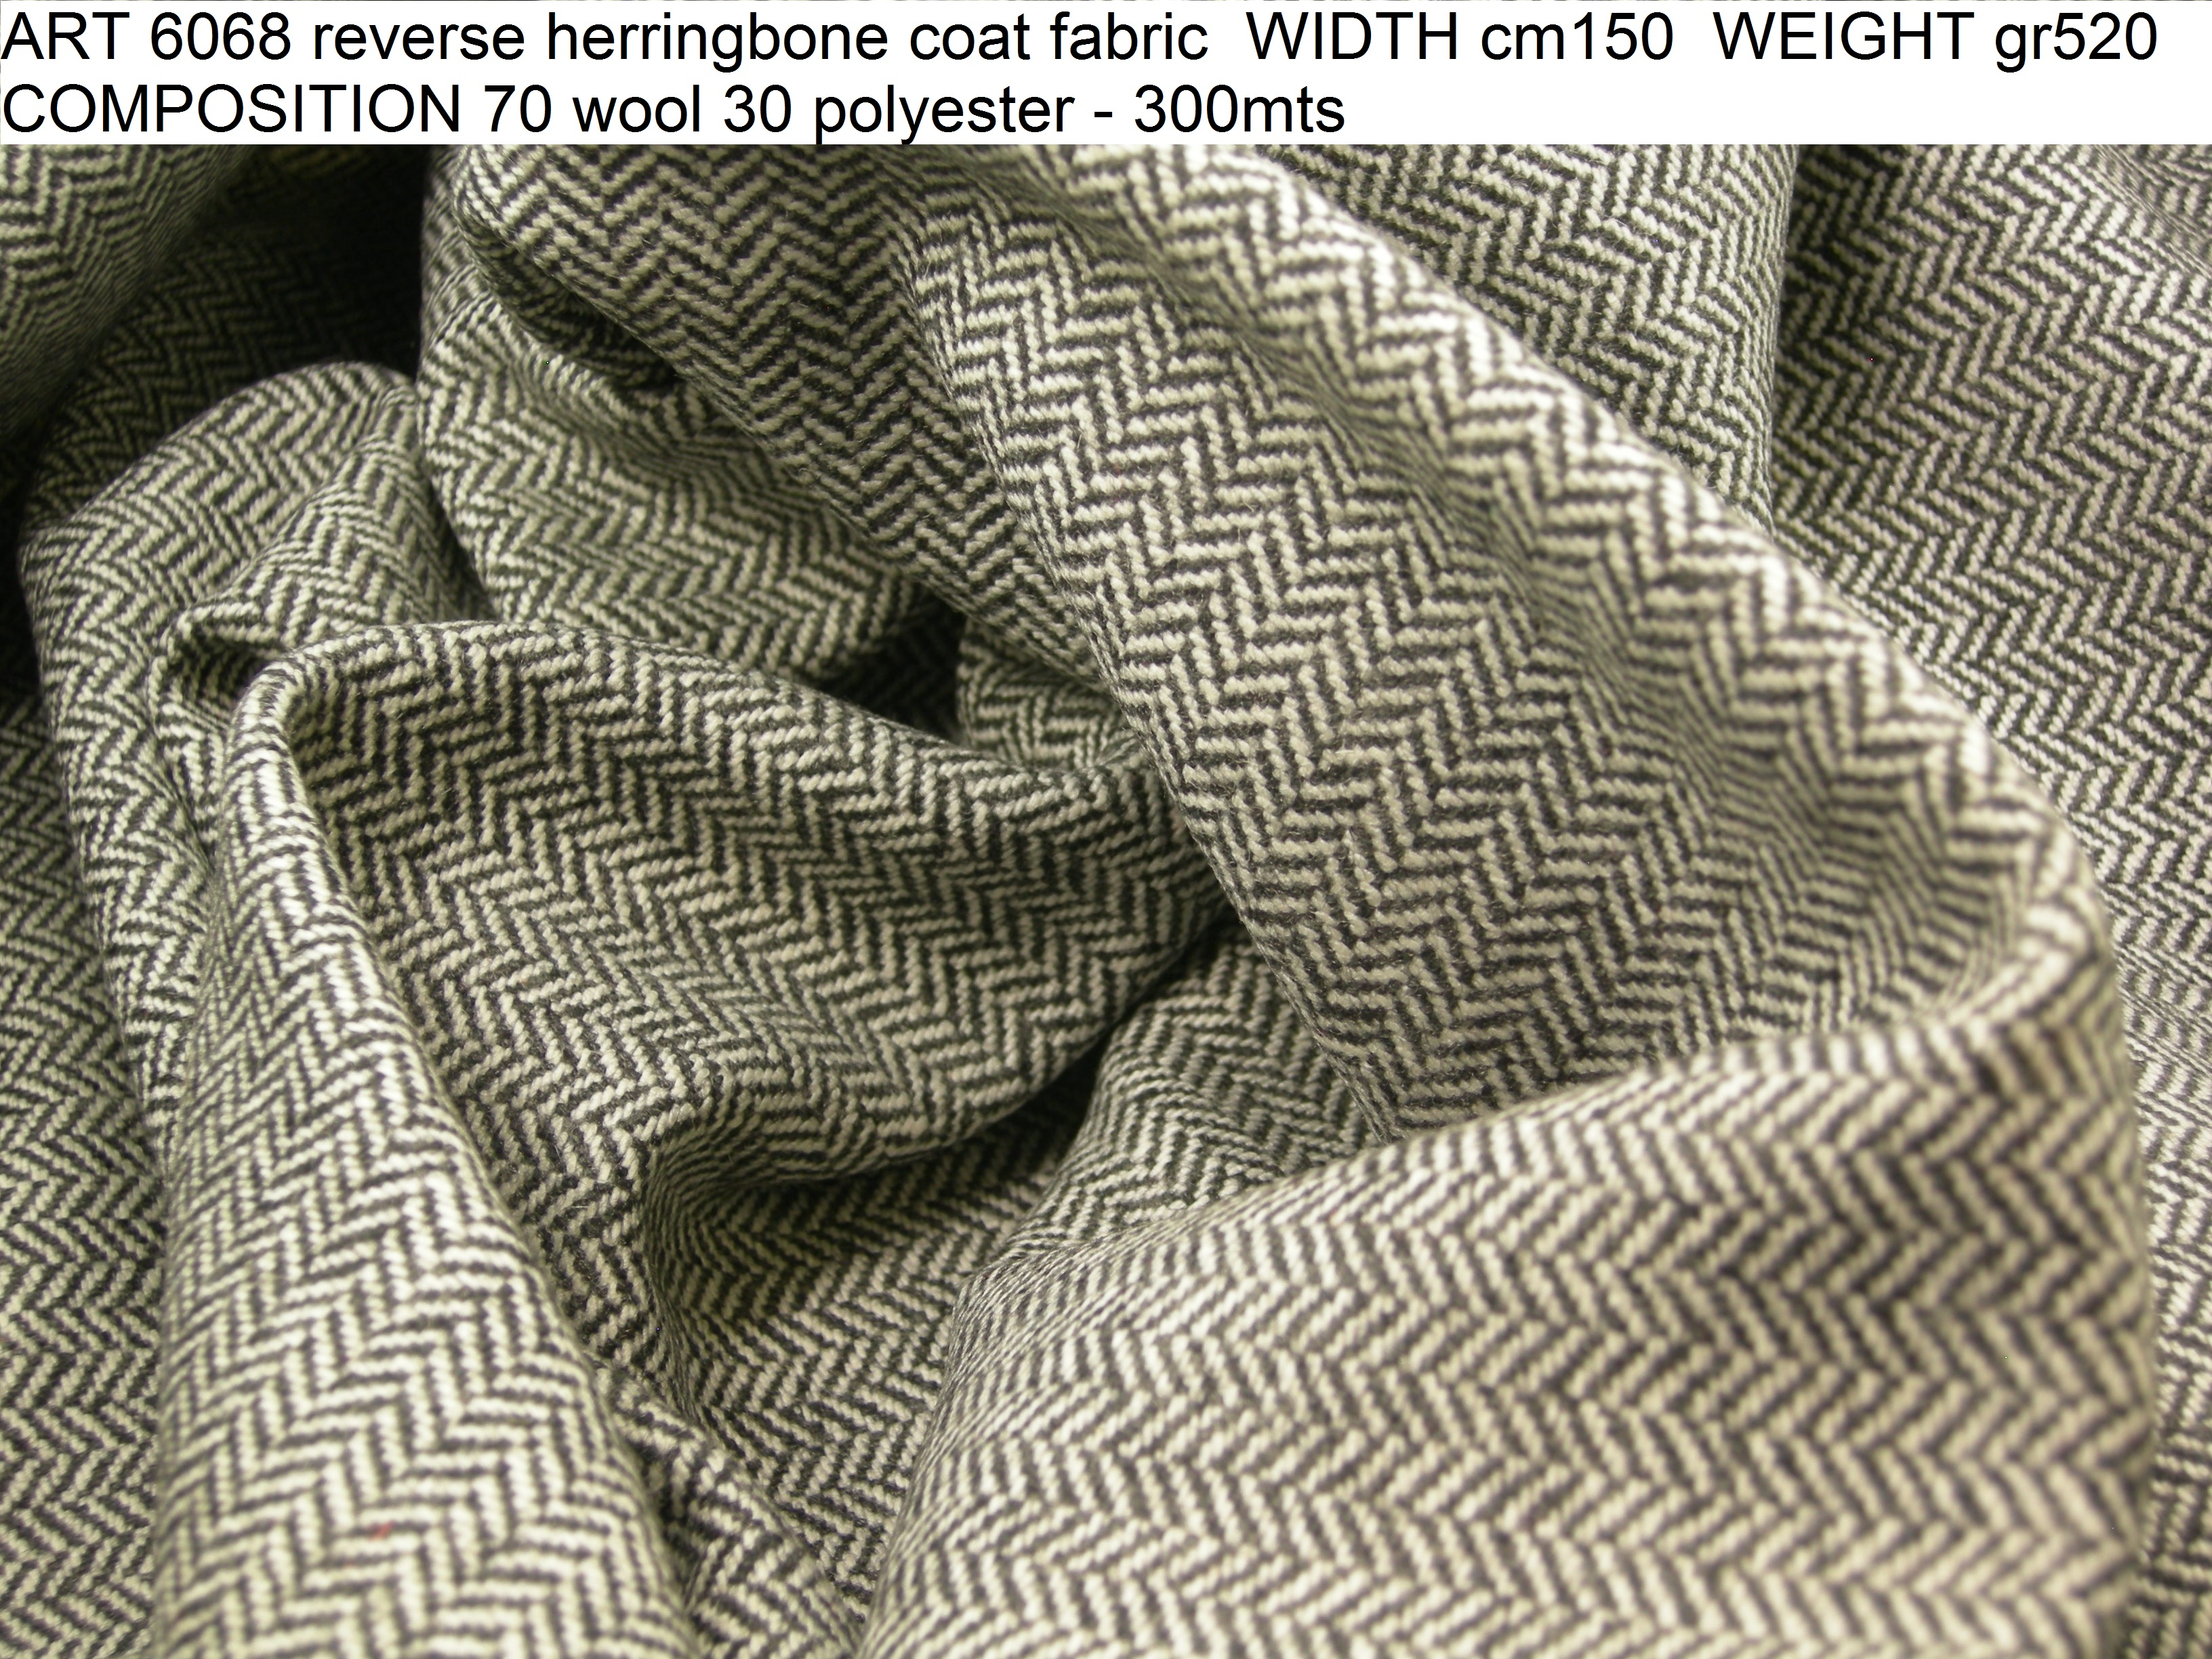 ART 6068 reverse herringbone coat fabric WIDTH cm150 WEIGHT gr520 COMPOSITION 70 wool 30 polyester - 300mts